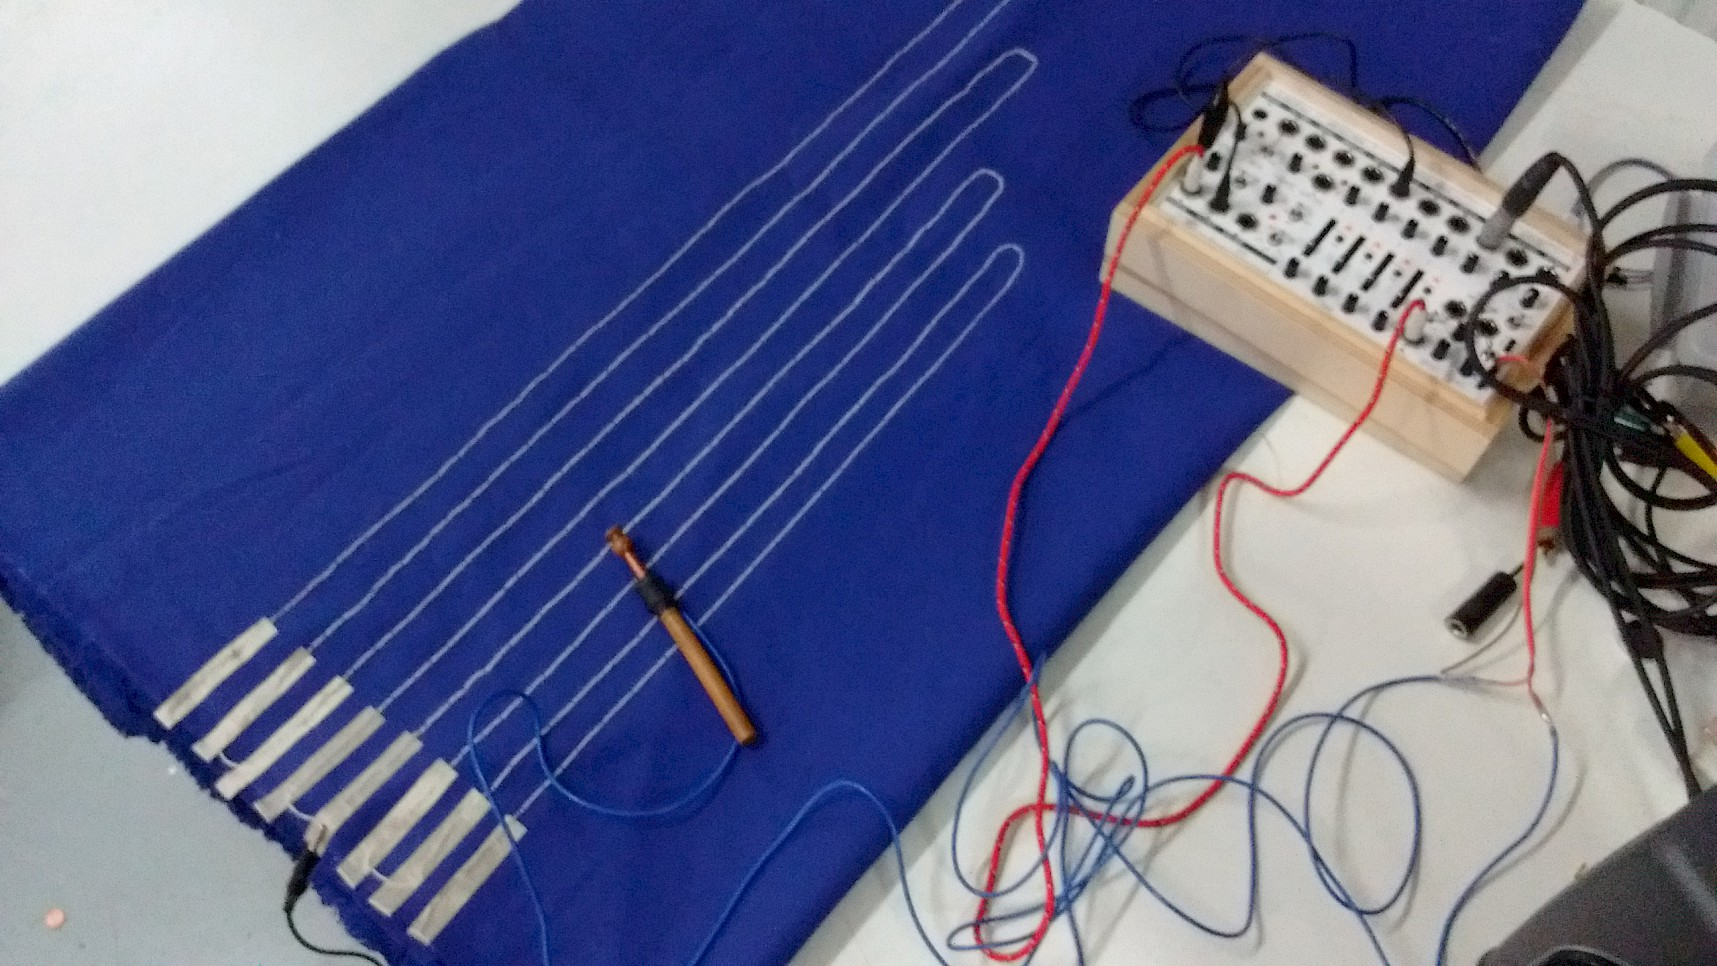 Making a textile tunner with KOMA Field Kit and electronic textiles